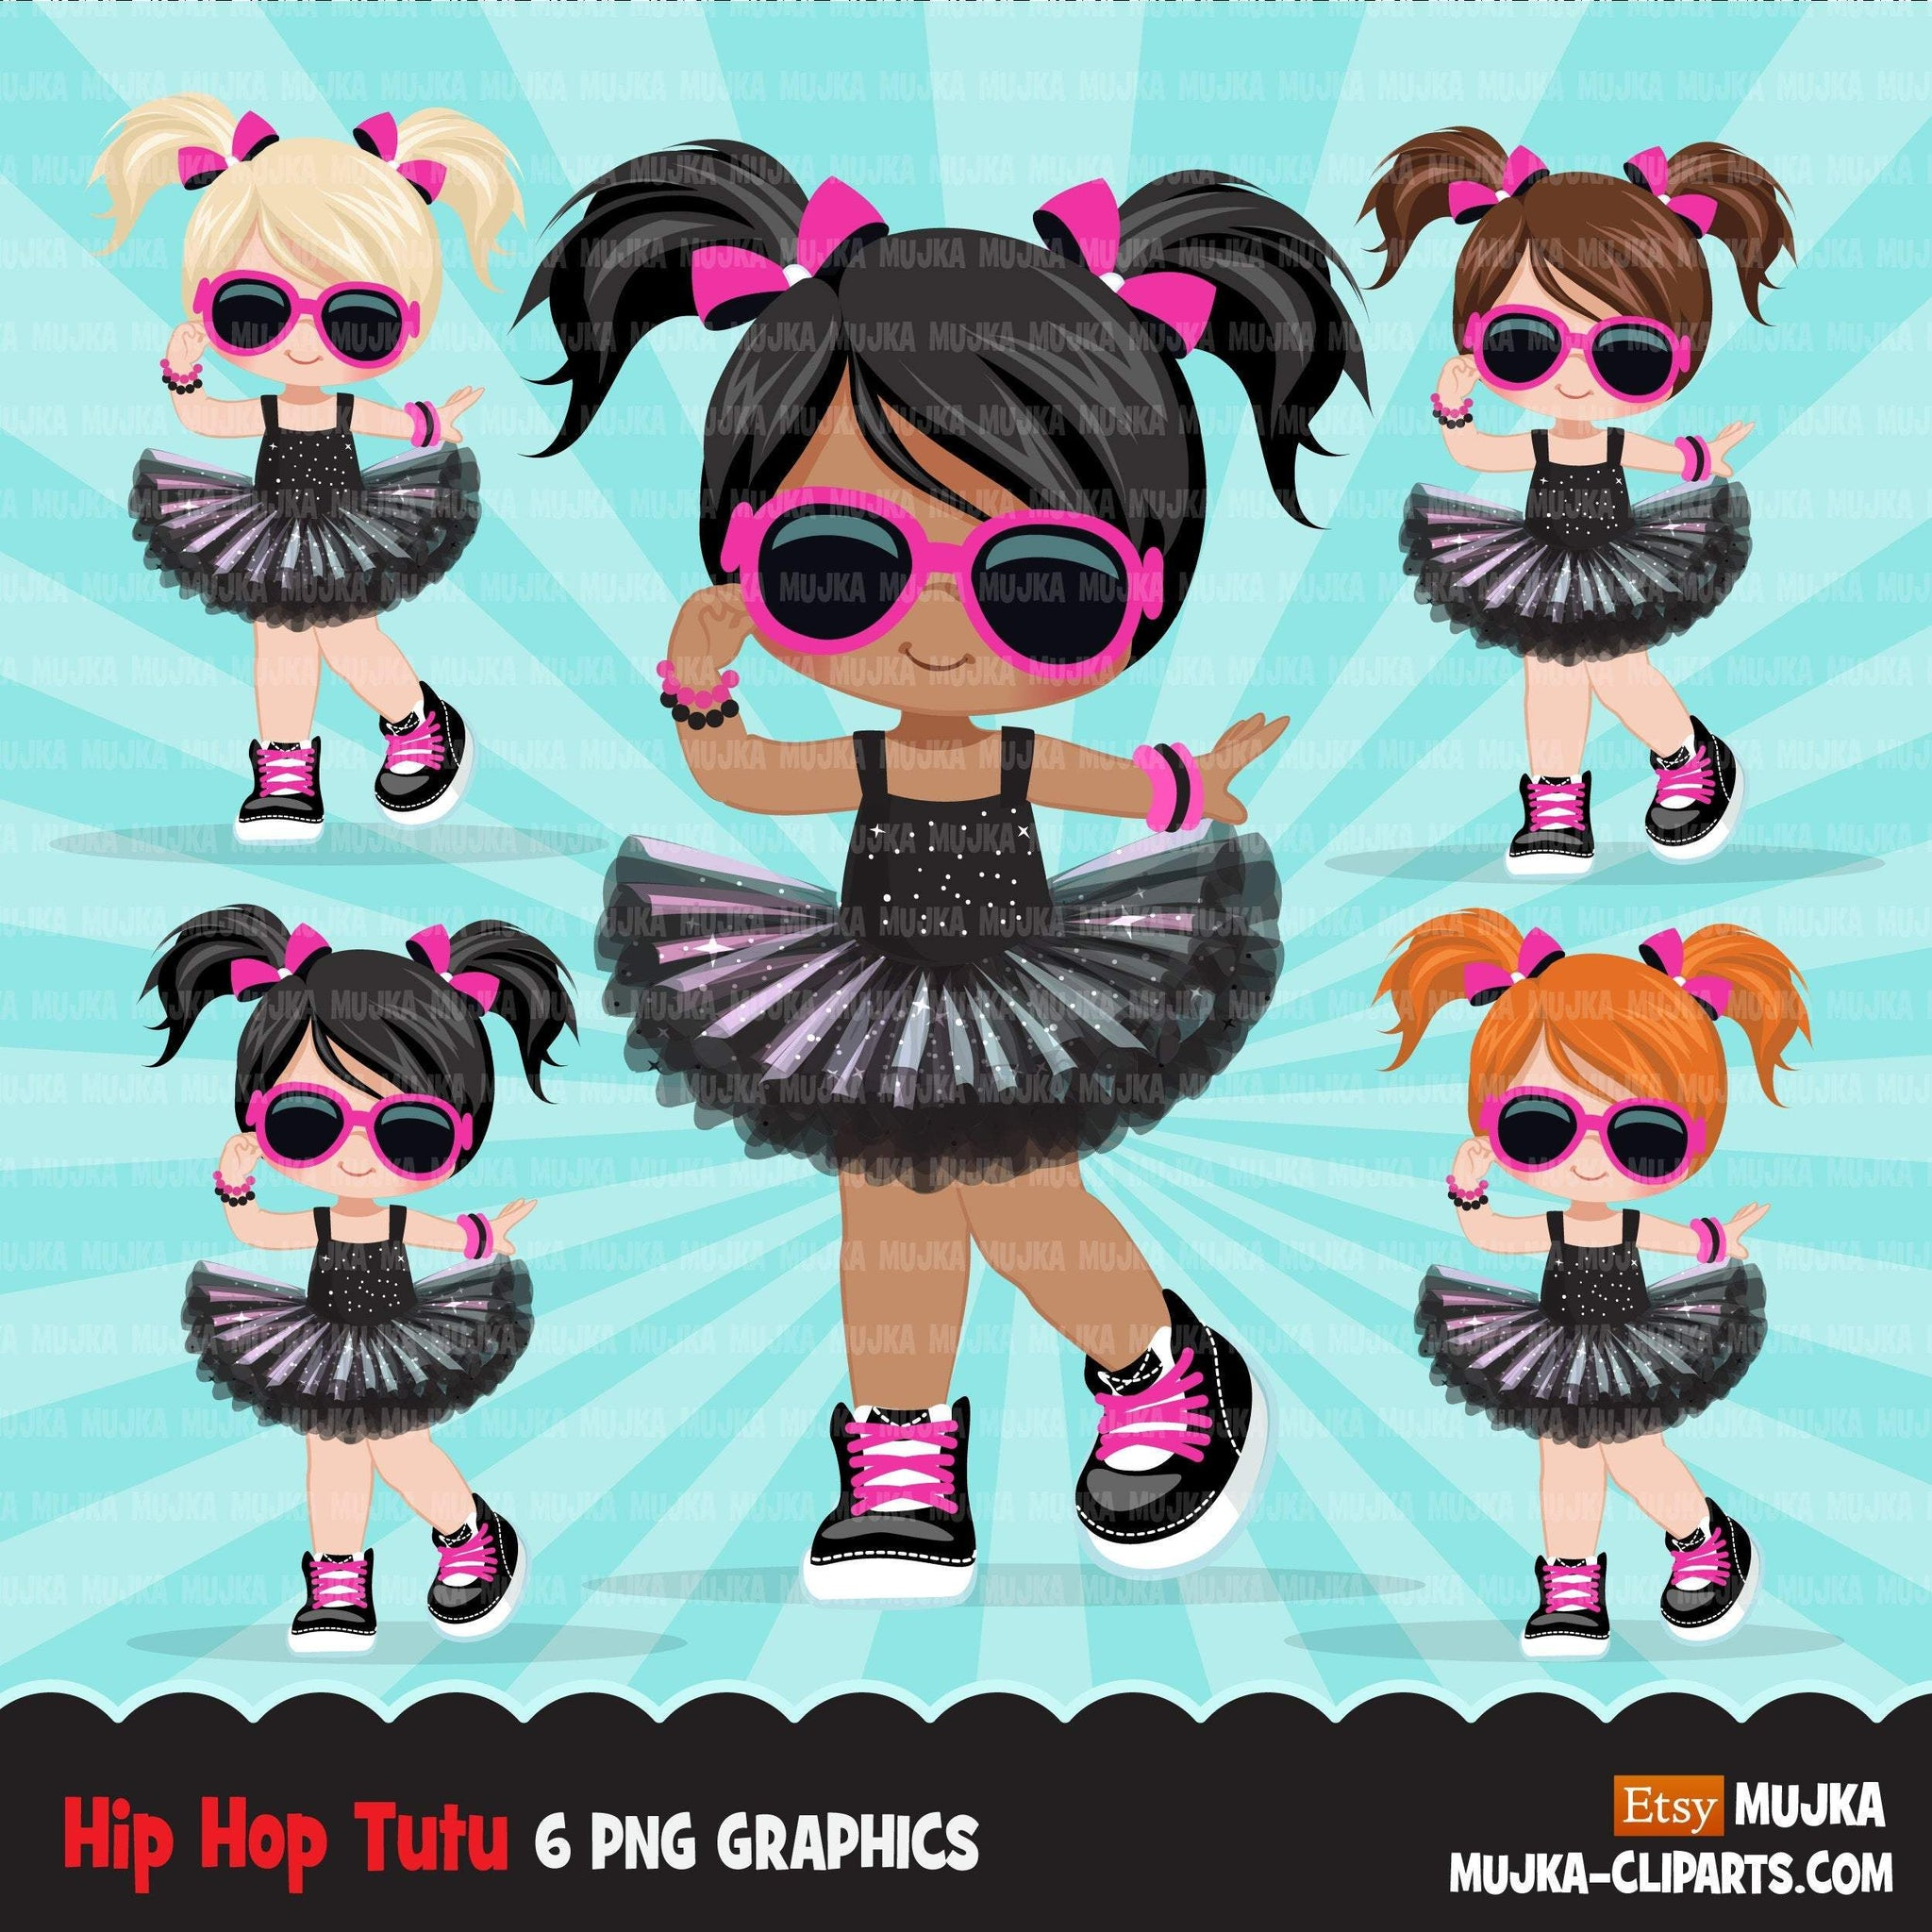 Hip hop dancer girls clipart, Black tutu break dance, rapping characters, planner stickers, dance clip art